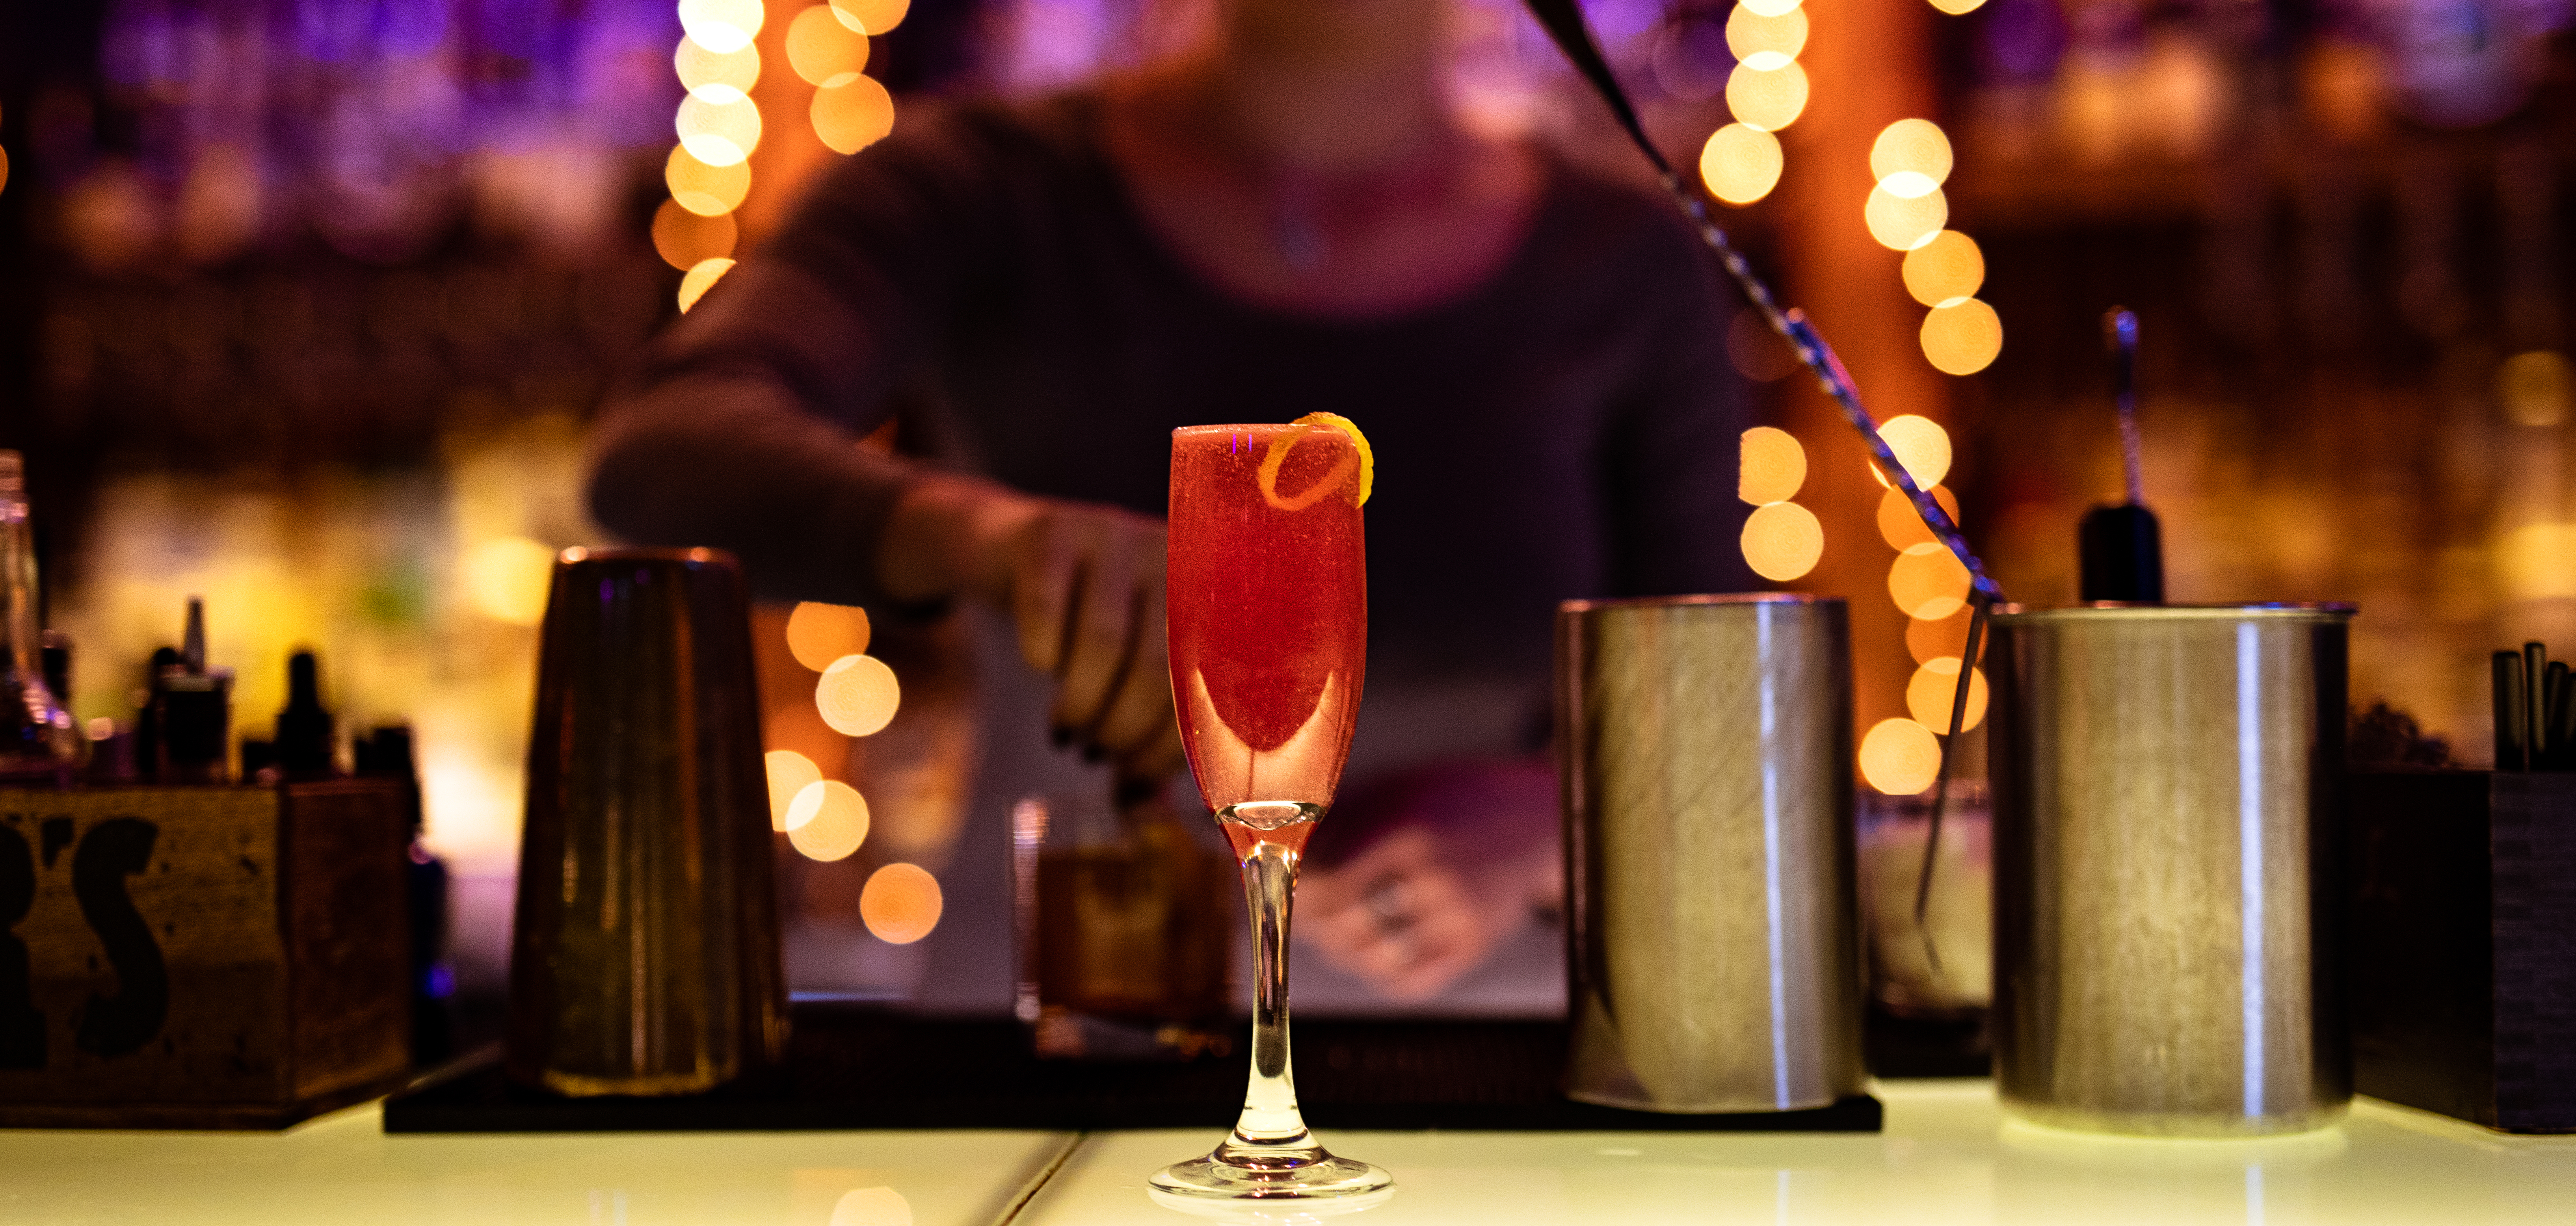 A red cocktail in a champagne glass sits atop the MixCo bar.